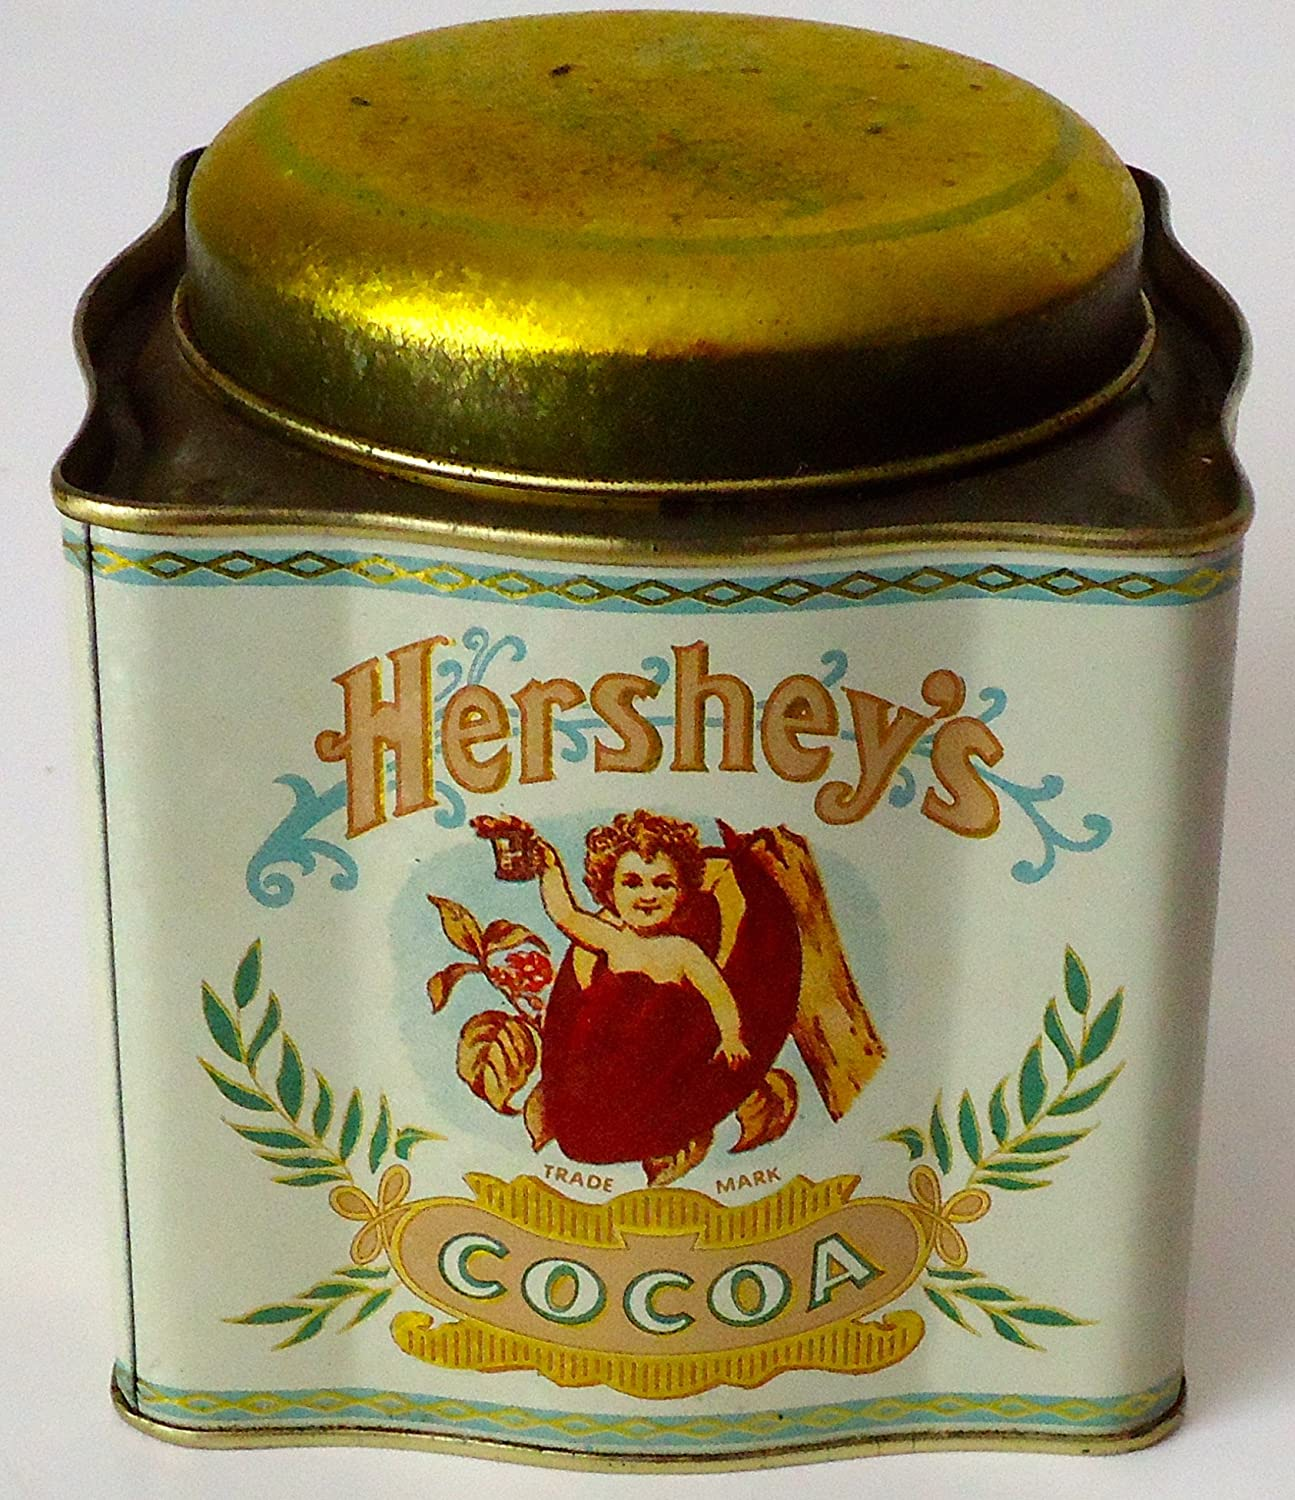 Amazon.com : Hershey's Cocoa Square Vintage Collectible Tin Can : Other  Products : Grocery & Gourmet Food